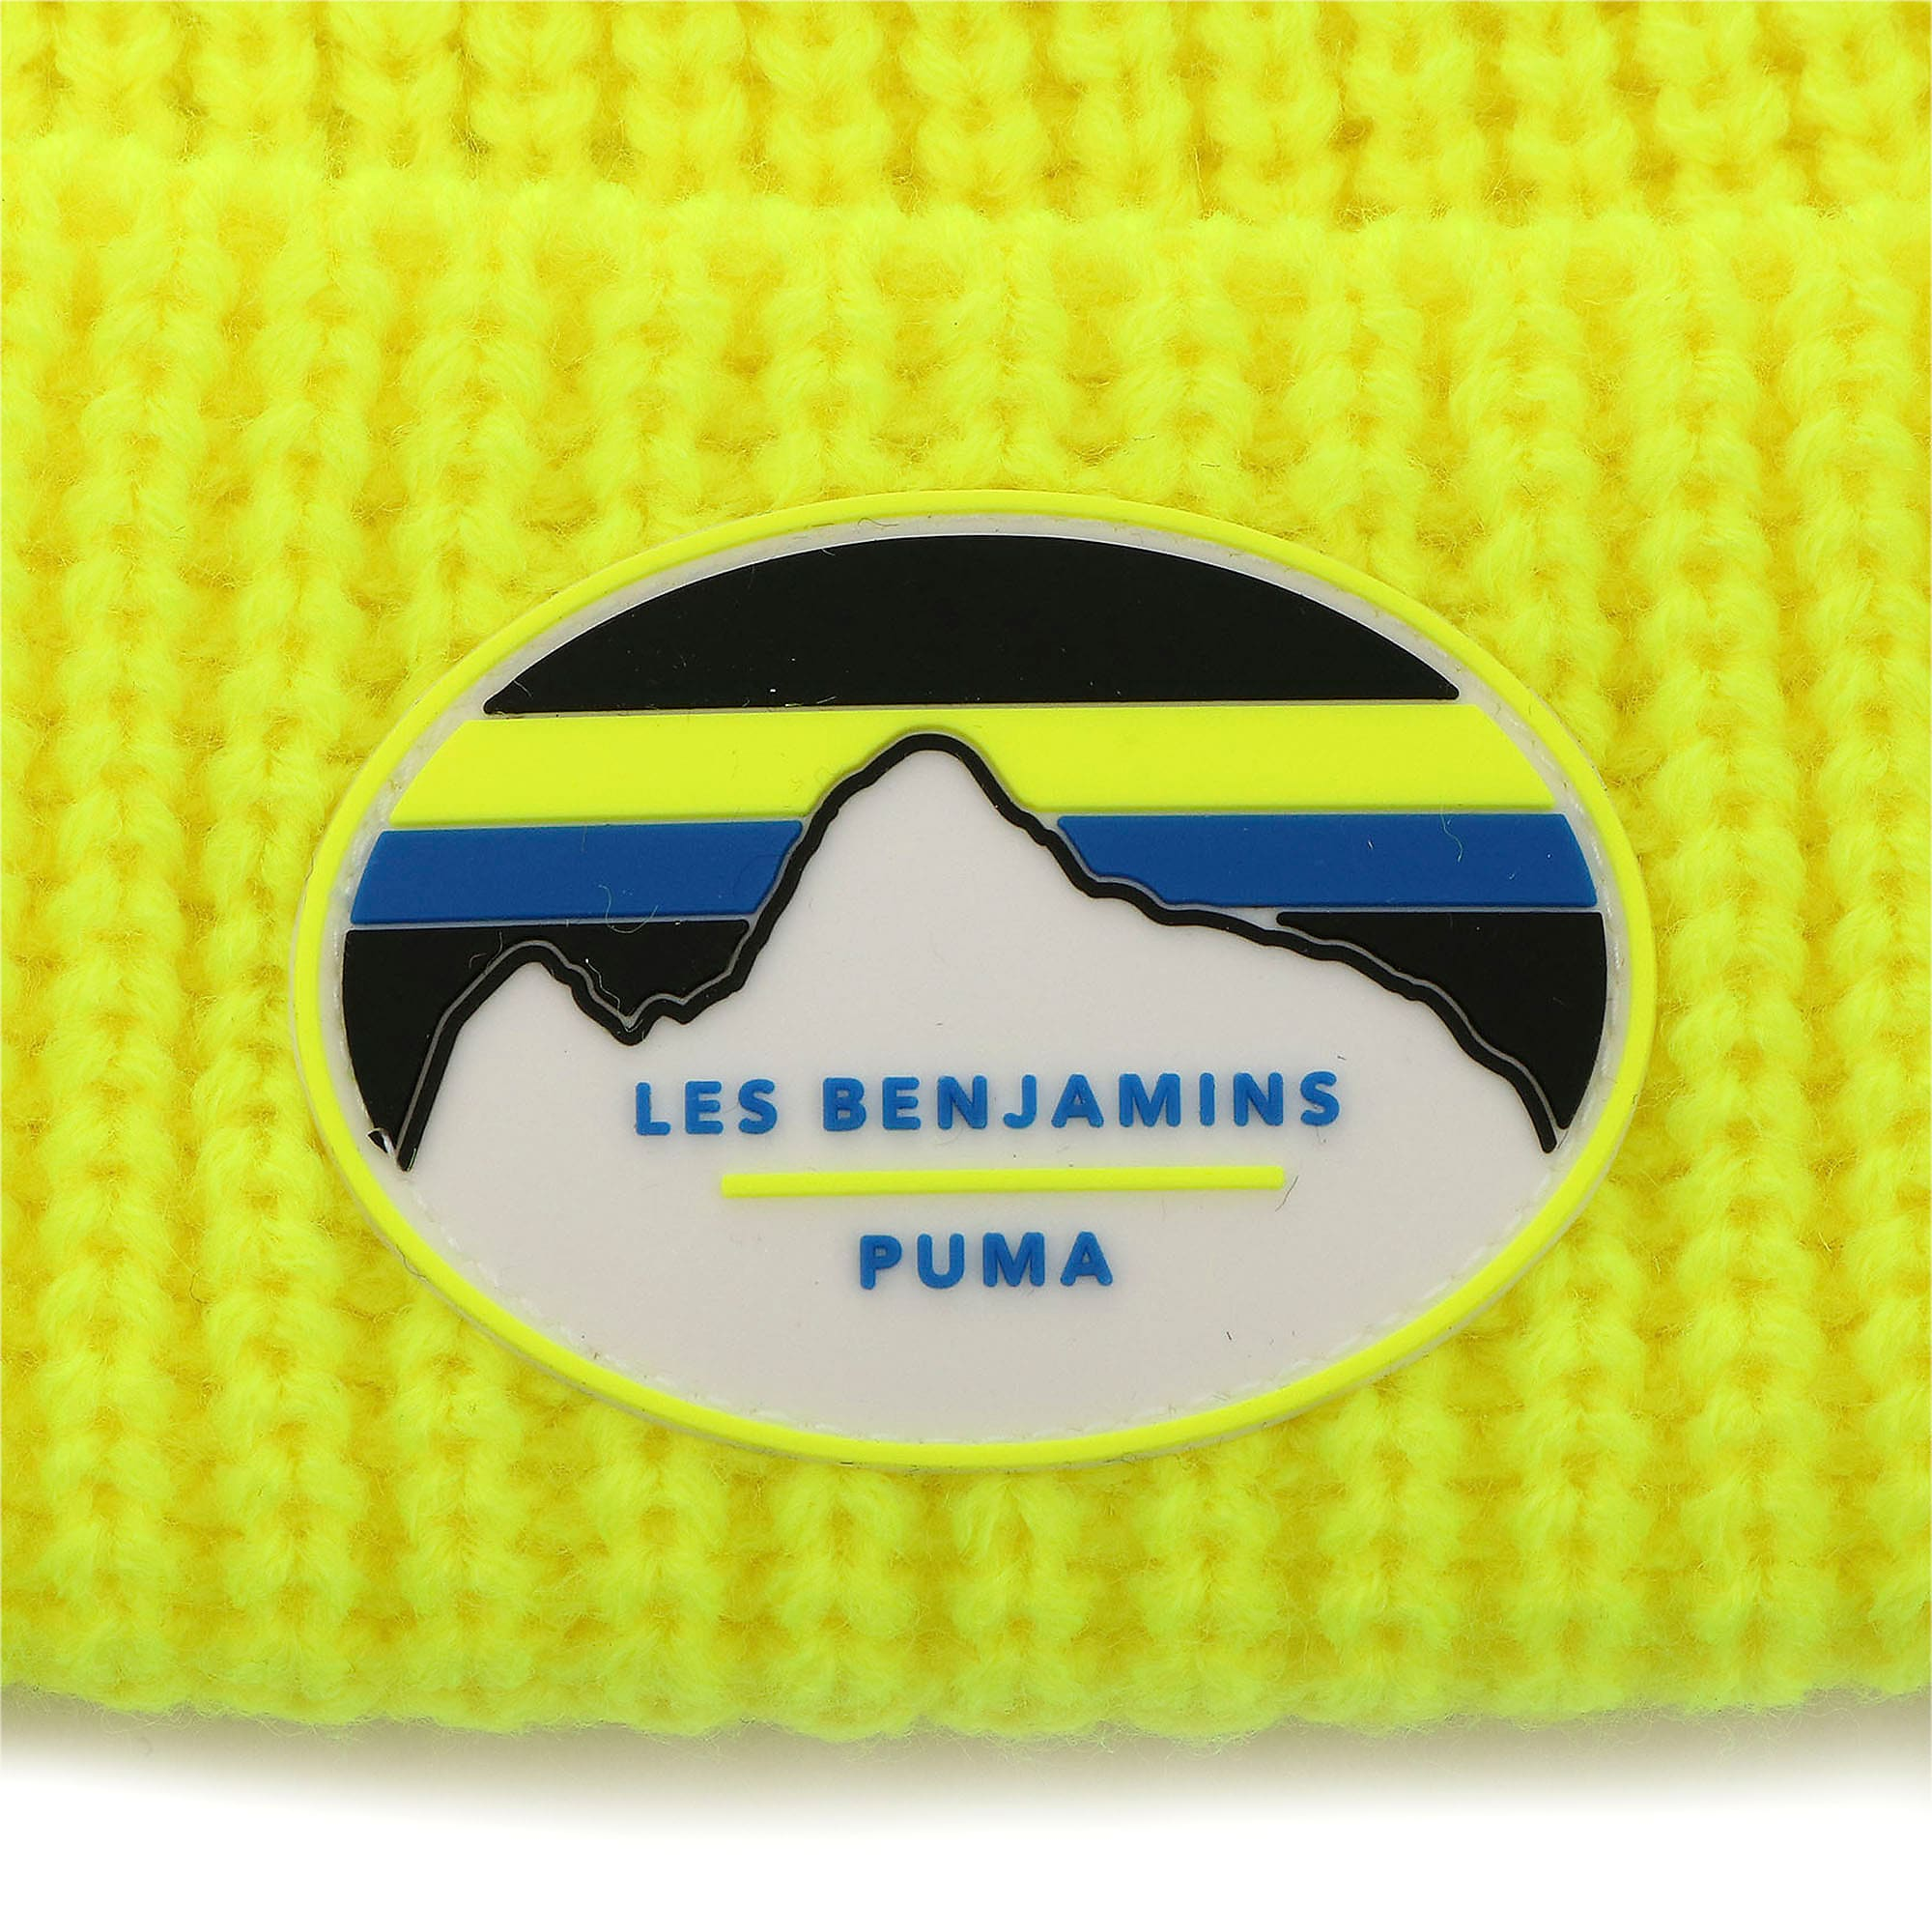 Thumbnail 4 of PUMA x LES BENJAMINS ビーニー, Safety Yellow, medium-JPN